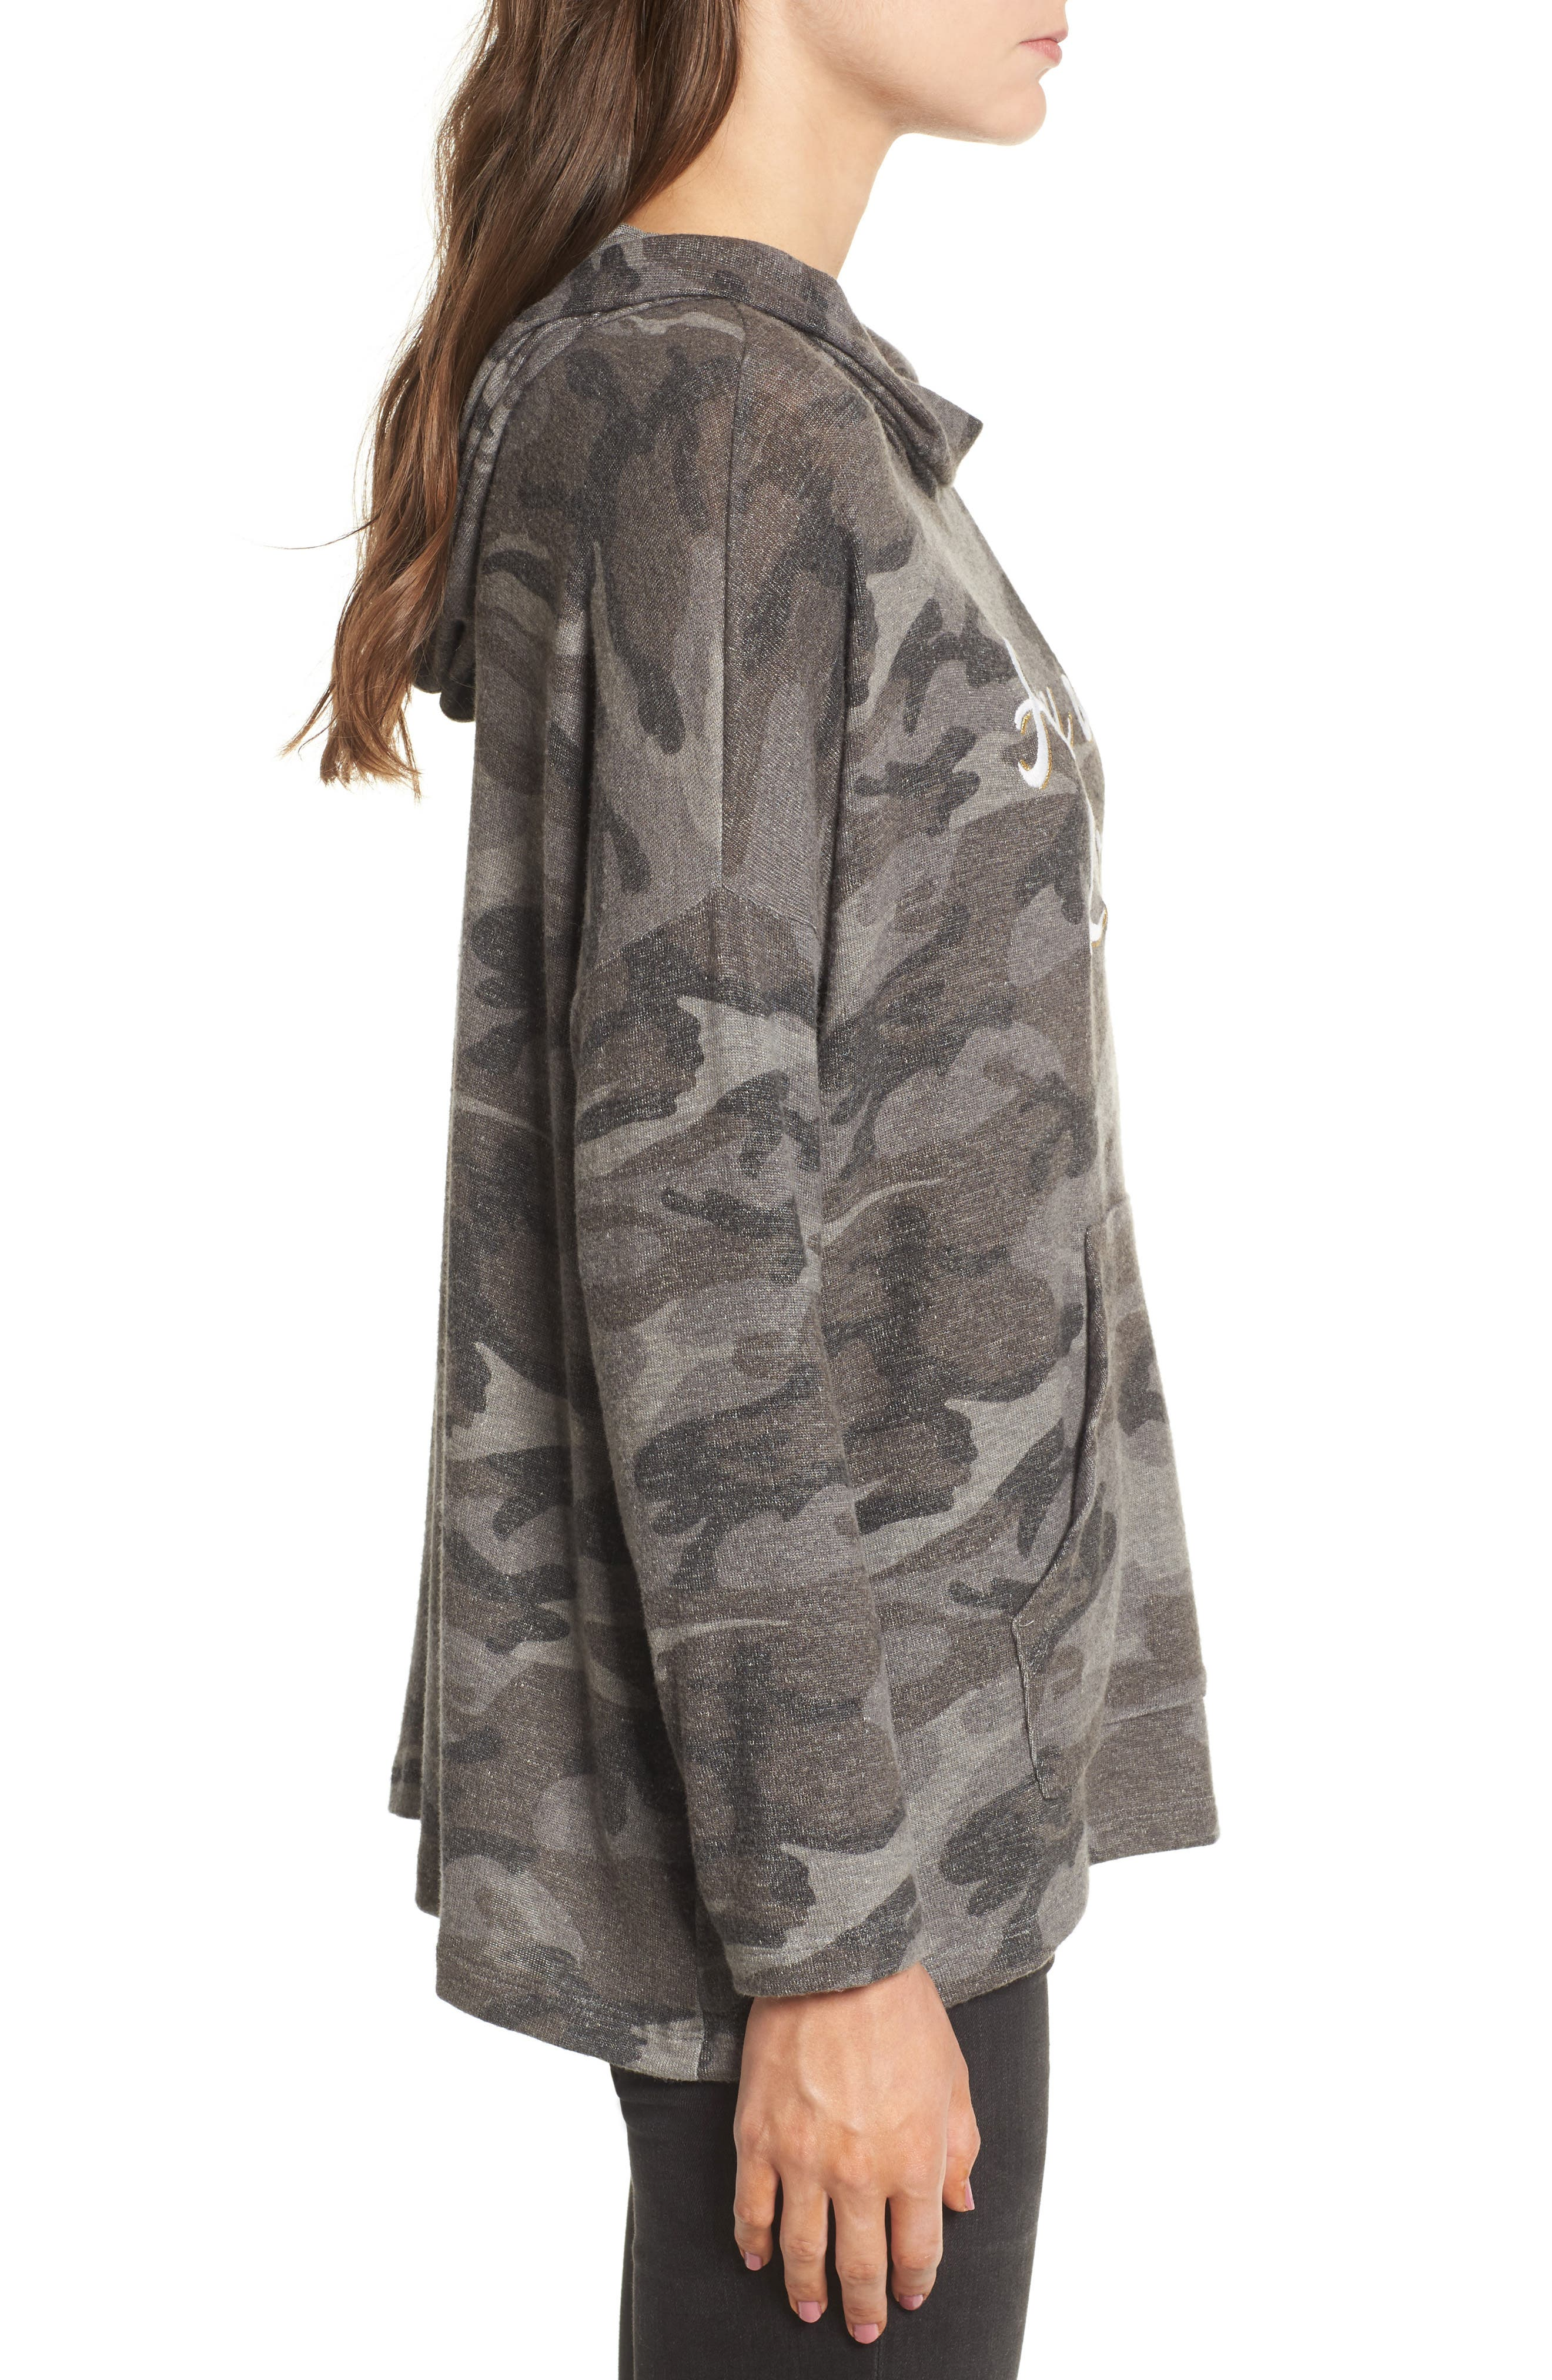 Army of Lovers Camo Hoodie,                             Alternate thumbnail 3, color,                             026